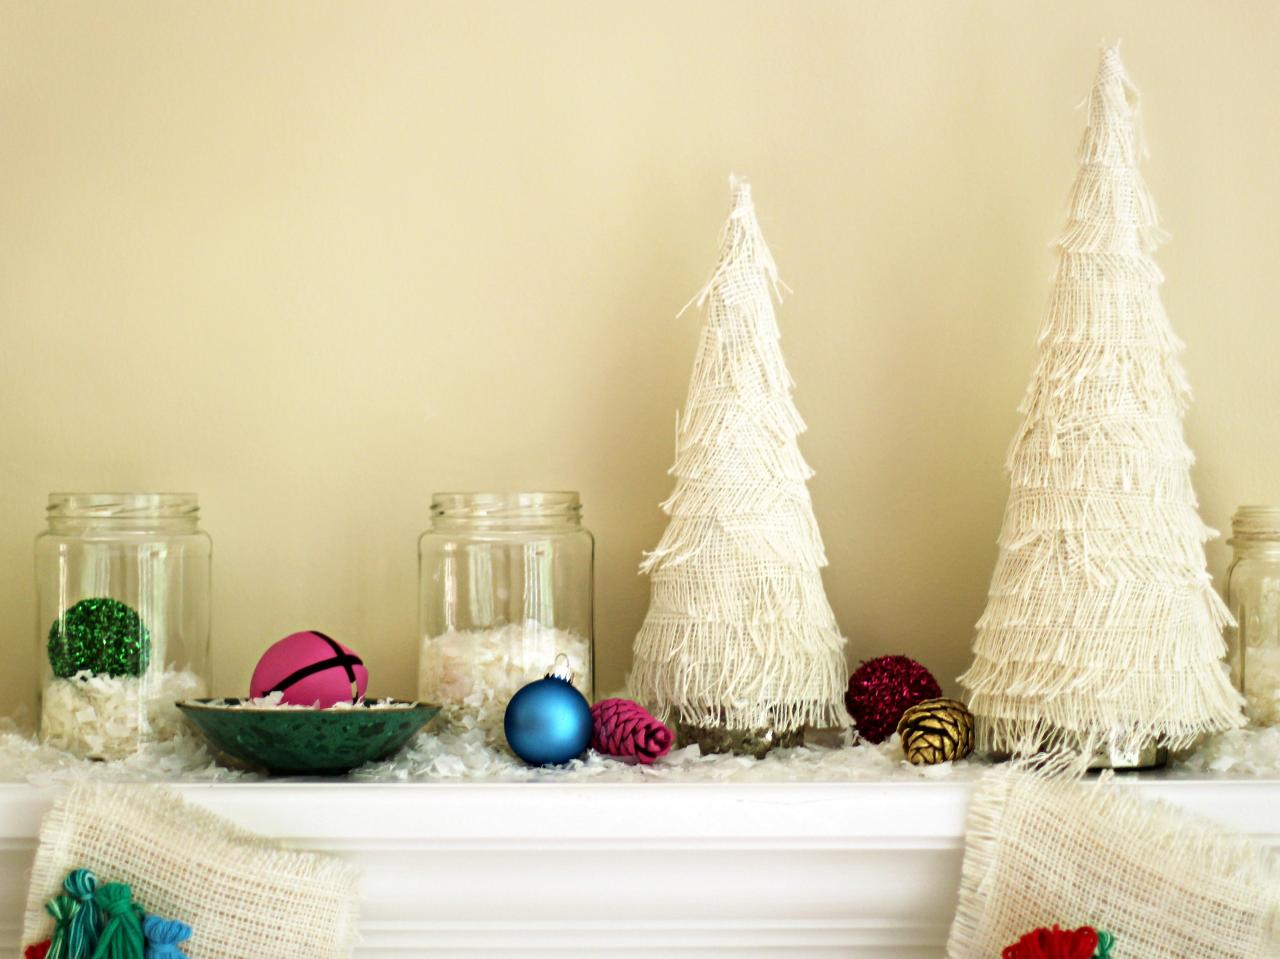 14 DIY Christmas Ornaments | DIY Network Blog: Made + Remade | DIY